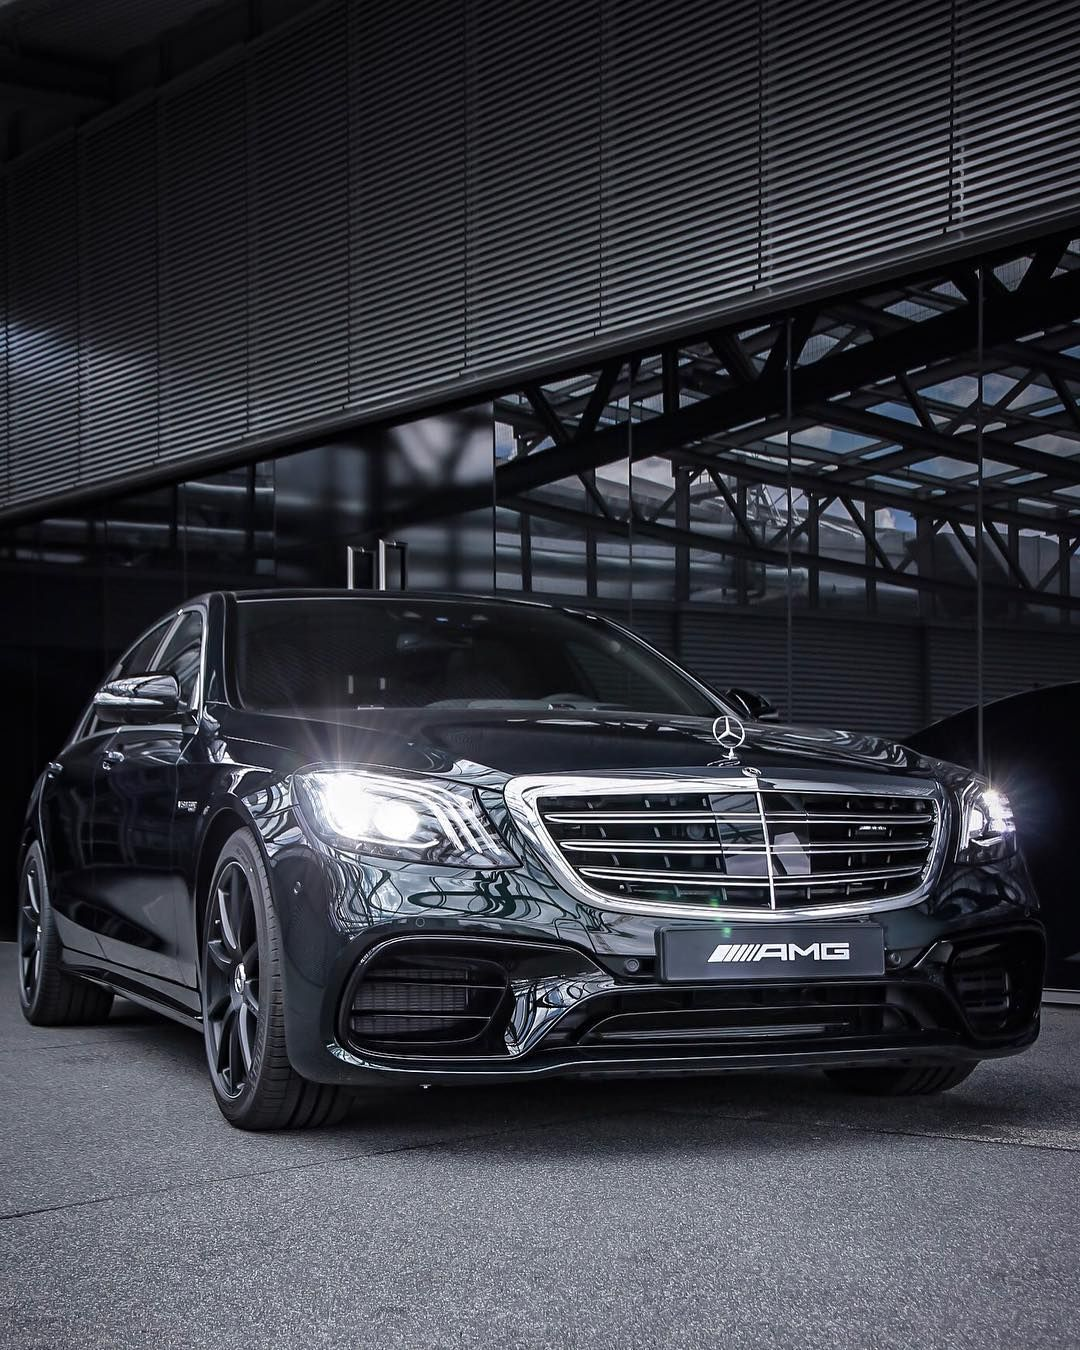 Pin By Justbebillioniare On Luxury Cars Mercedes Benz Cars Benz S Mercedes Benz World